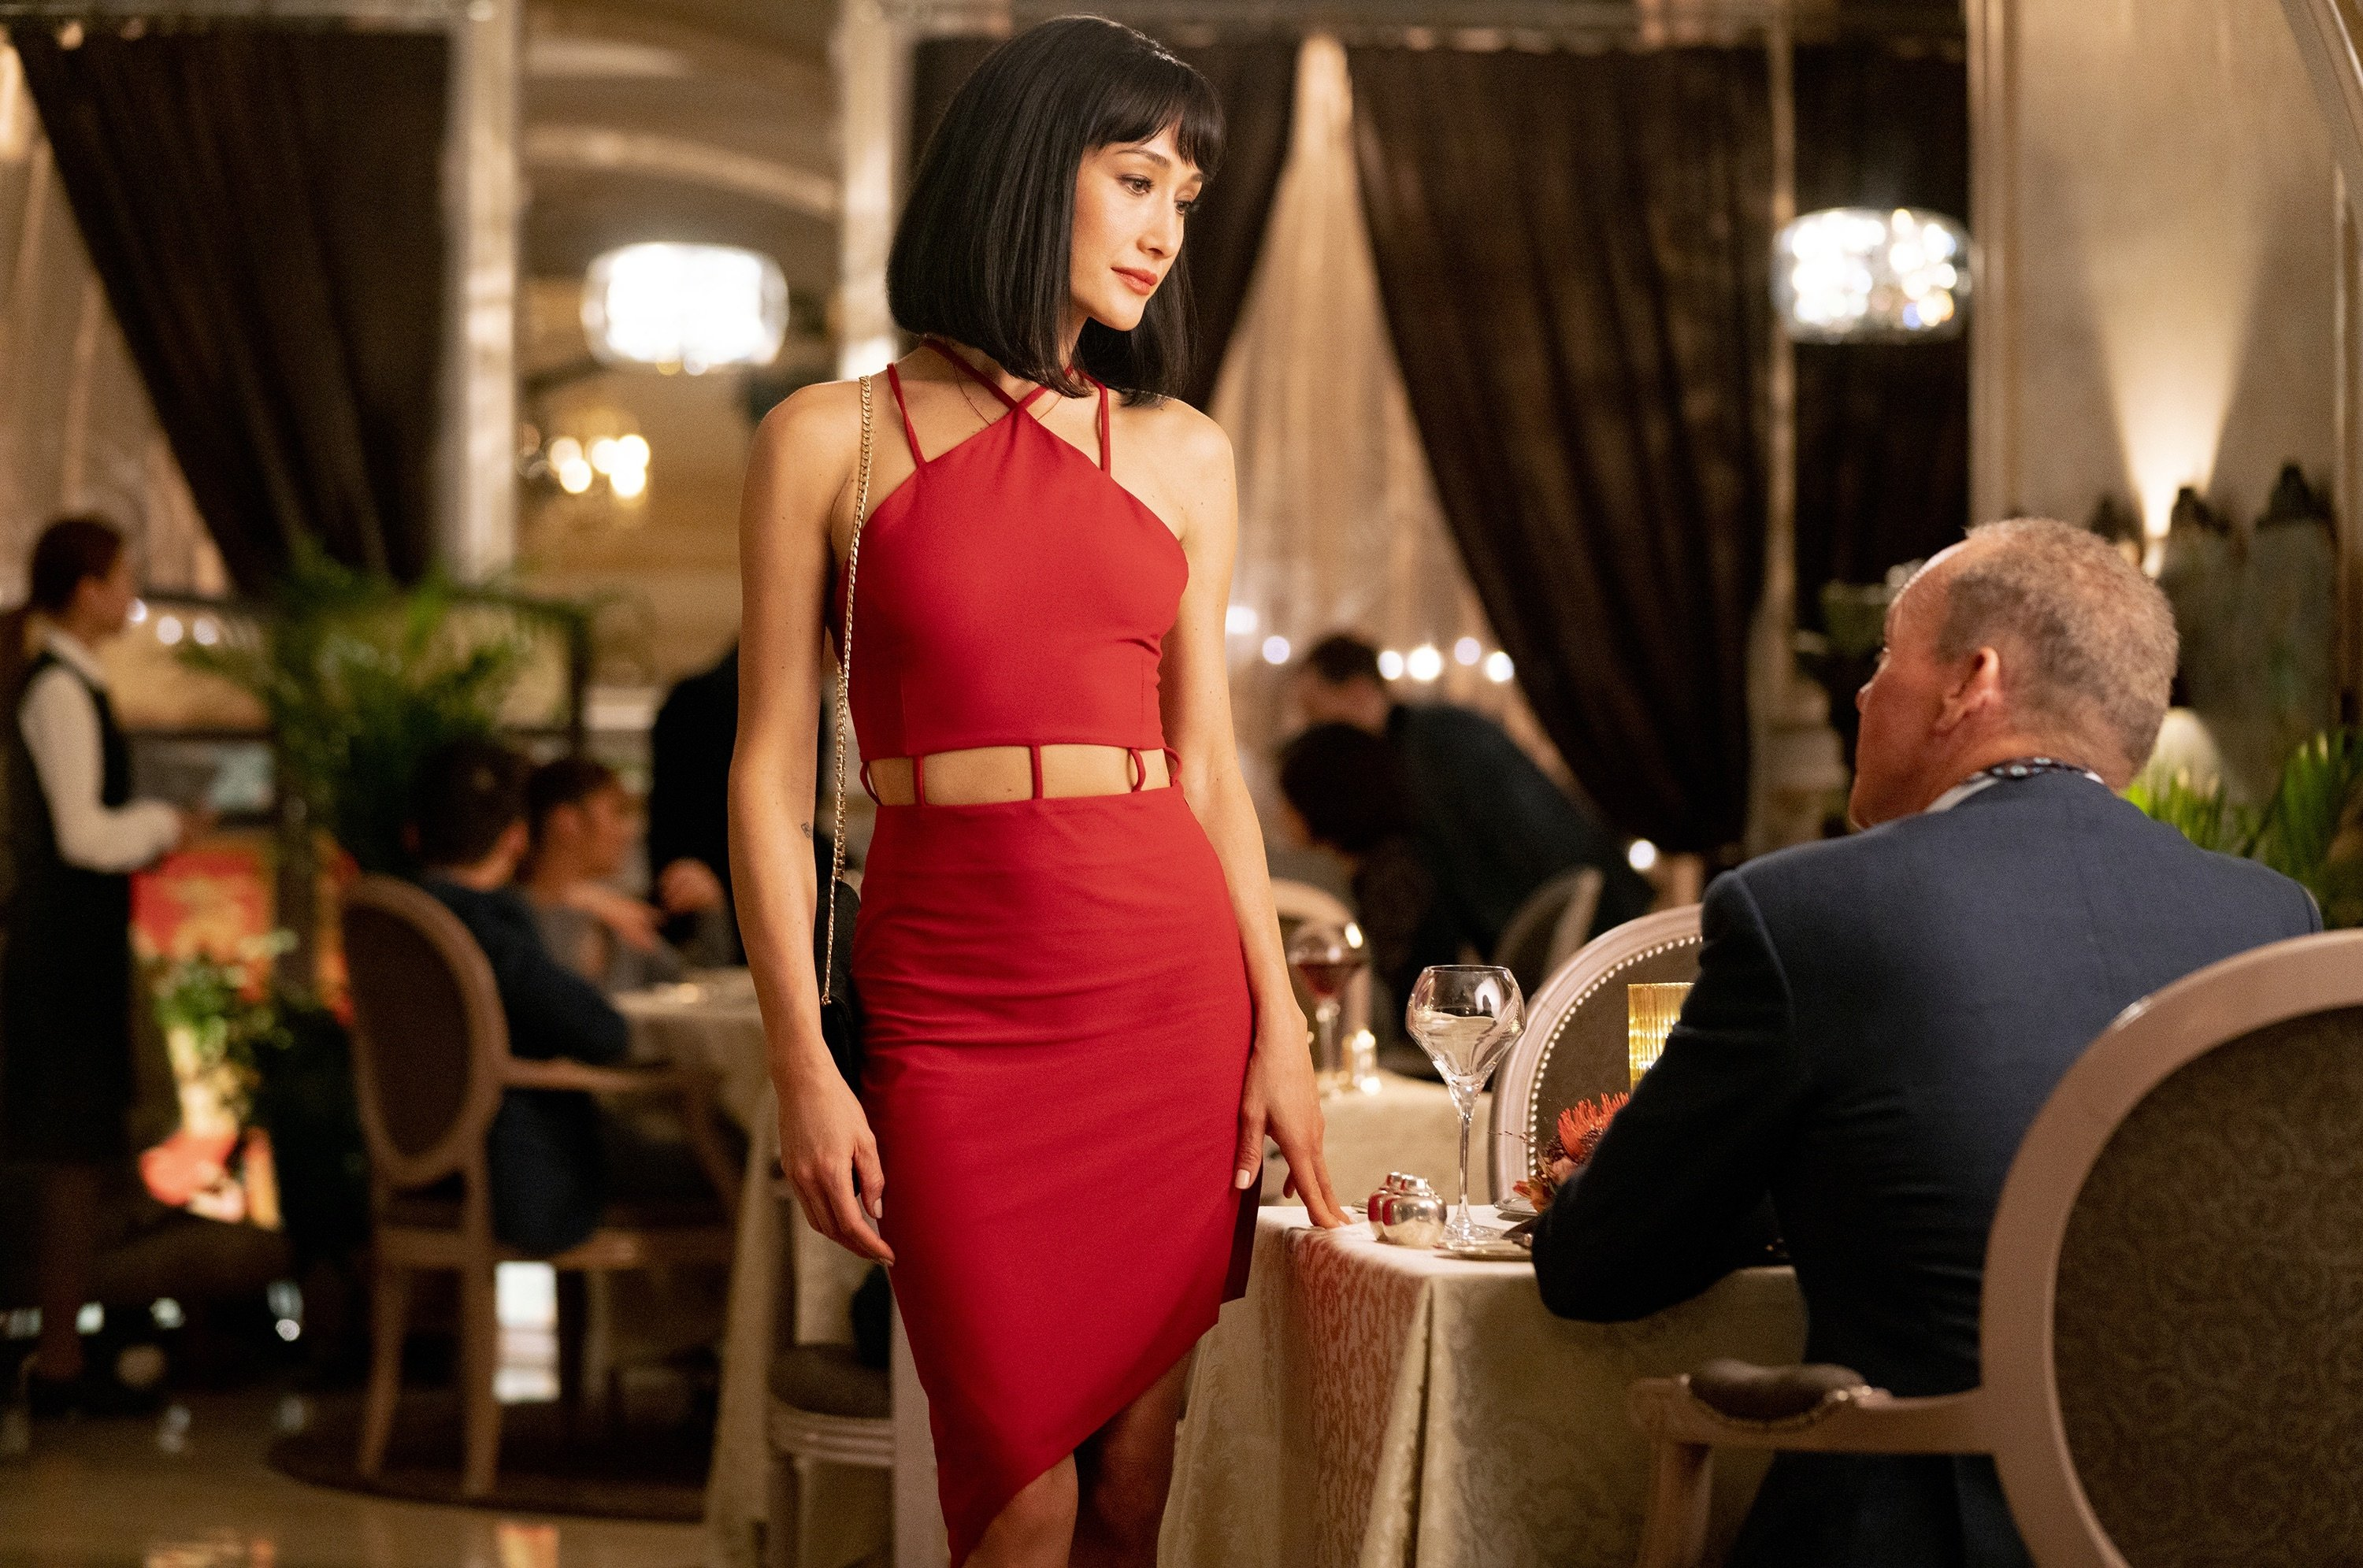 """Maggie Q (C) as Anna, in a scene from the film """"The Protege."""" (Lionsgate via AP)"""